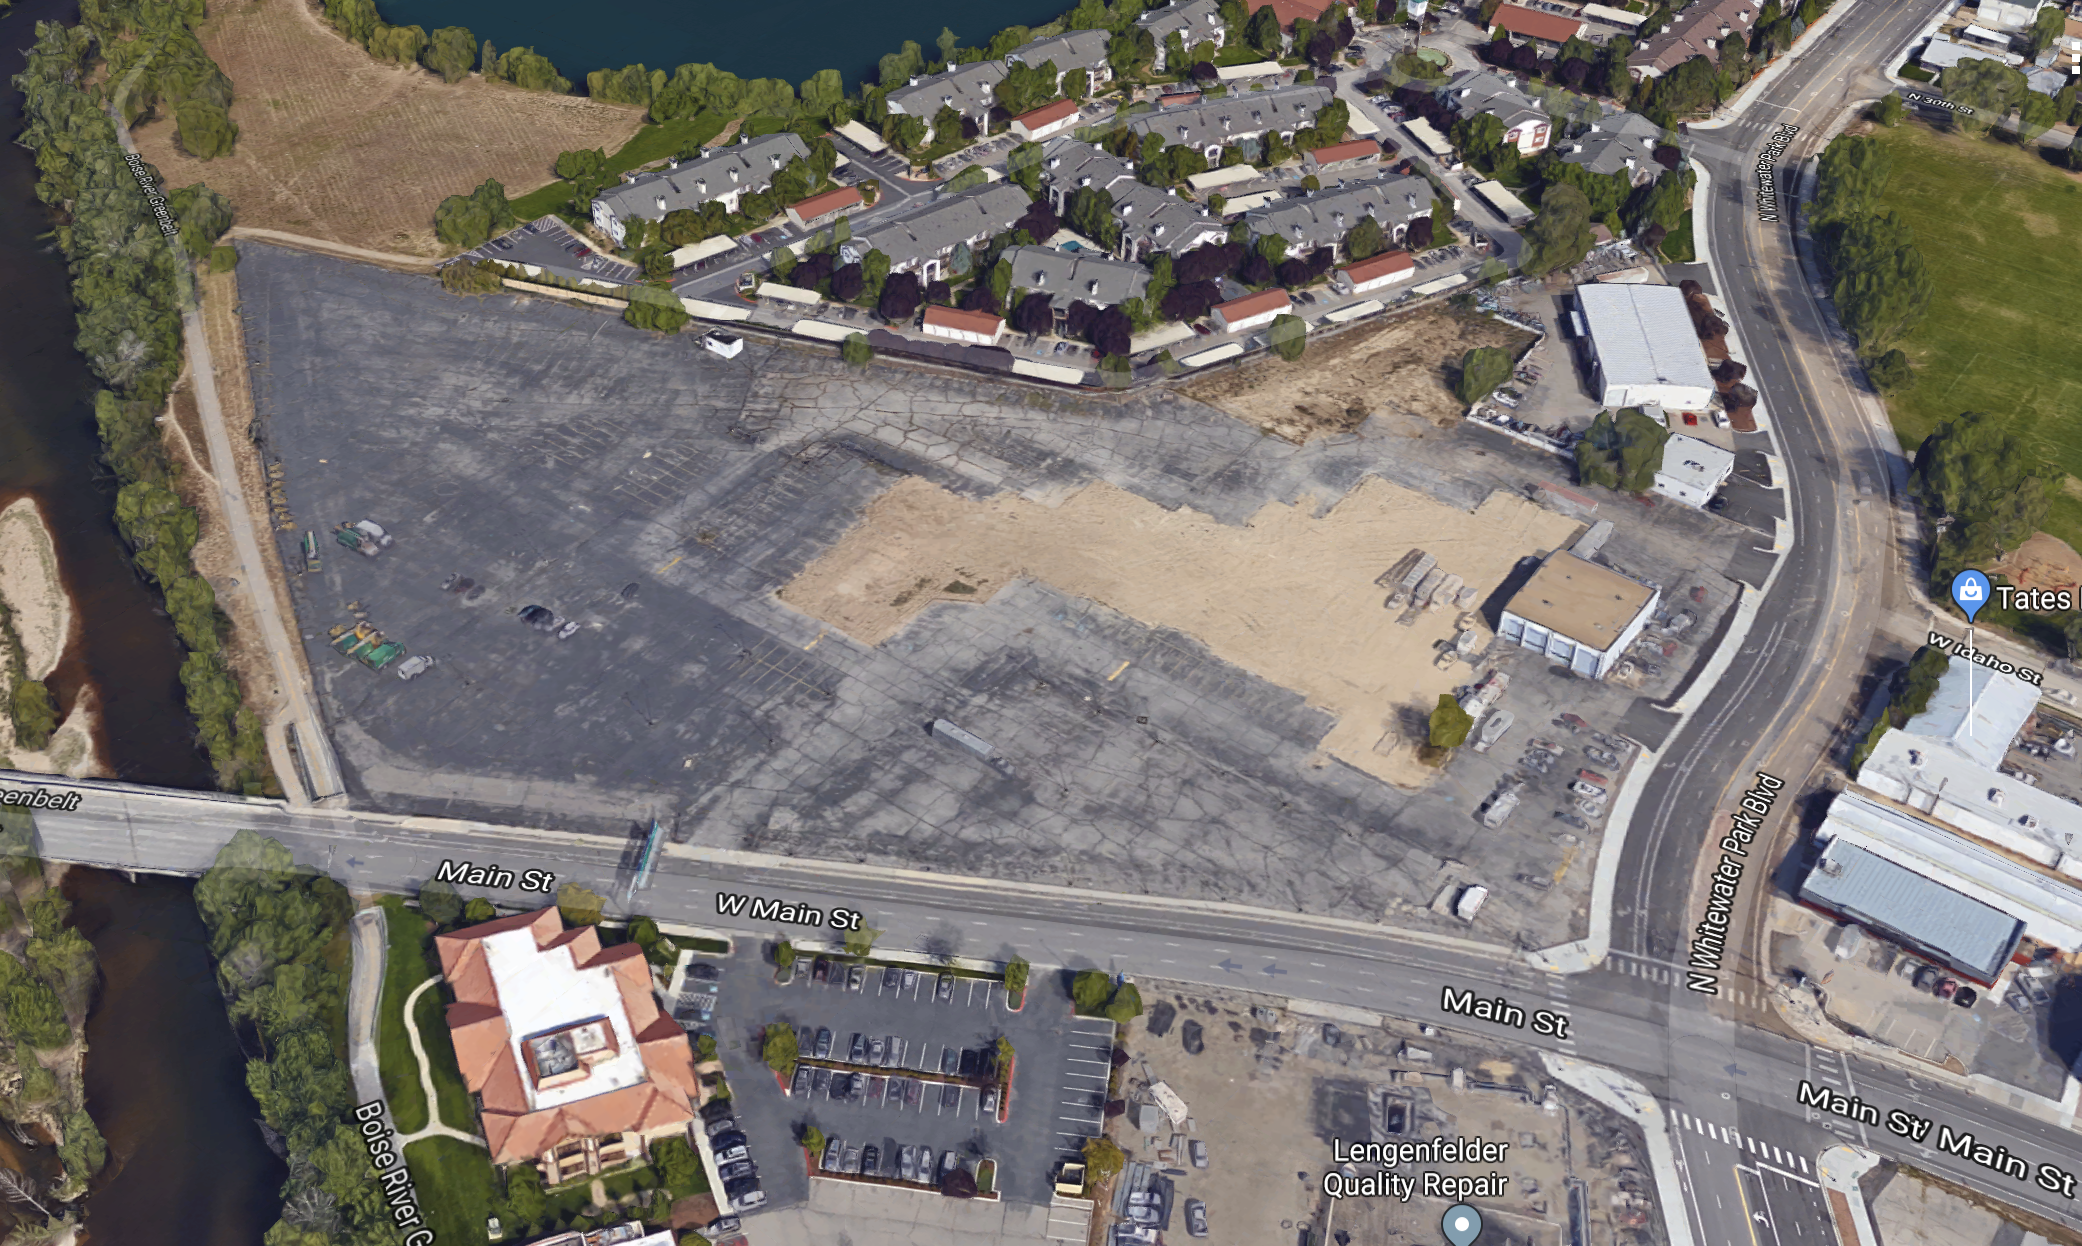 The former Bob Rice Ford site is reported to be a new spot for a Downtown Boise stadium project that has faced fierce opposition. Google Maps image.